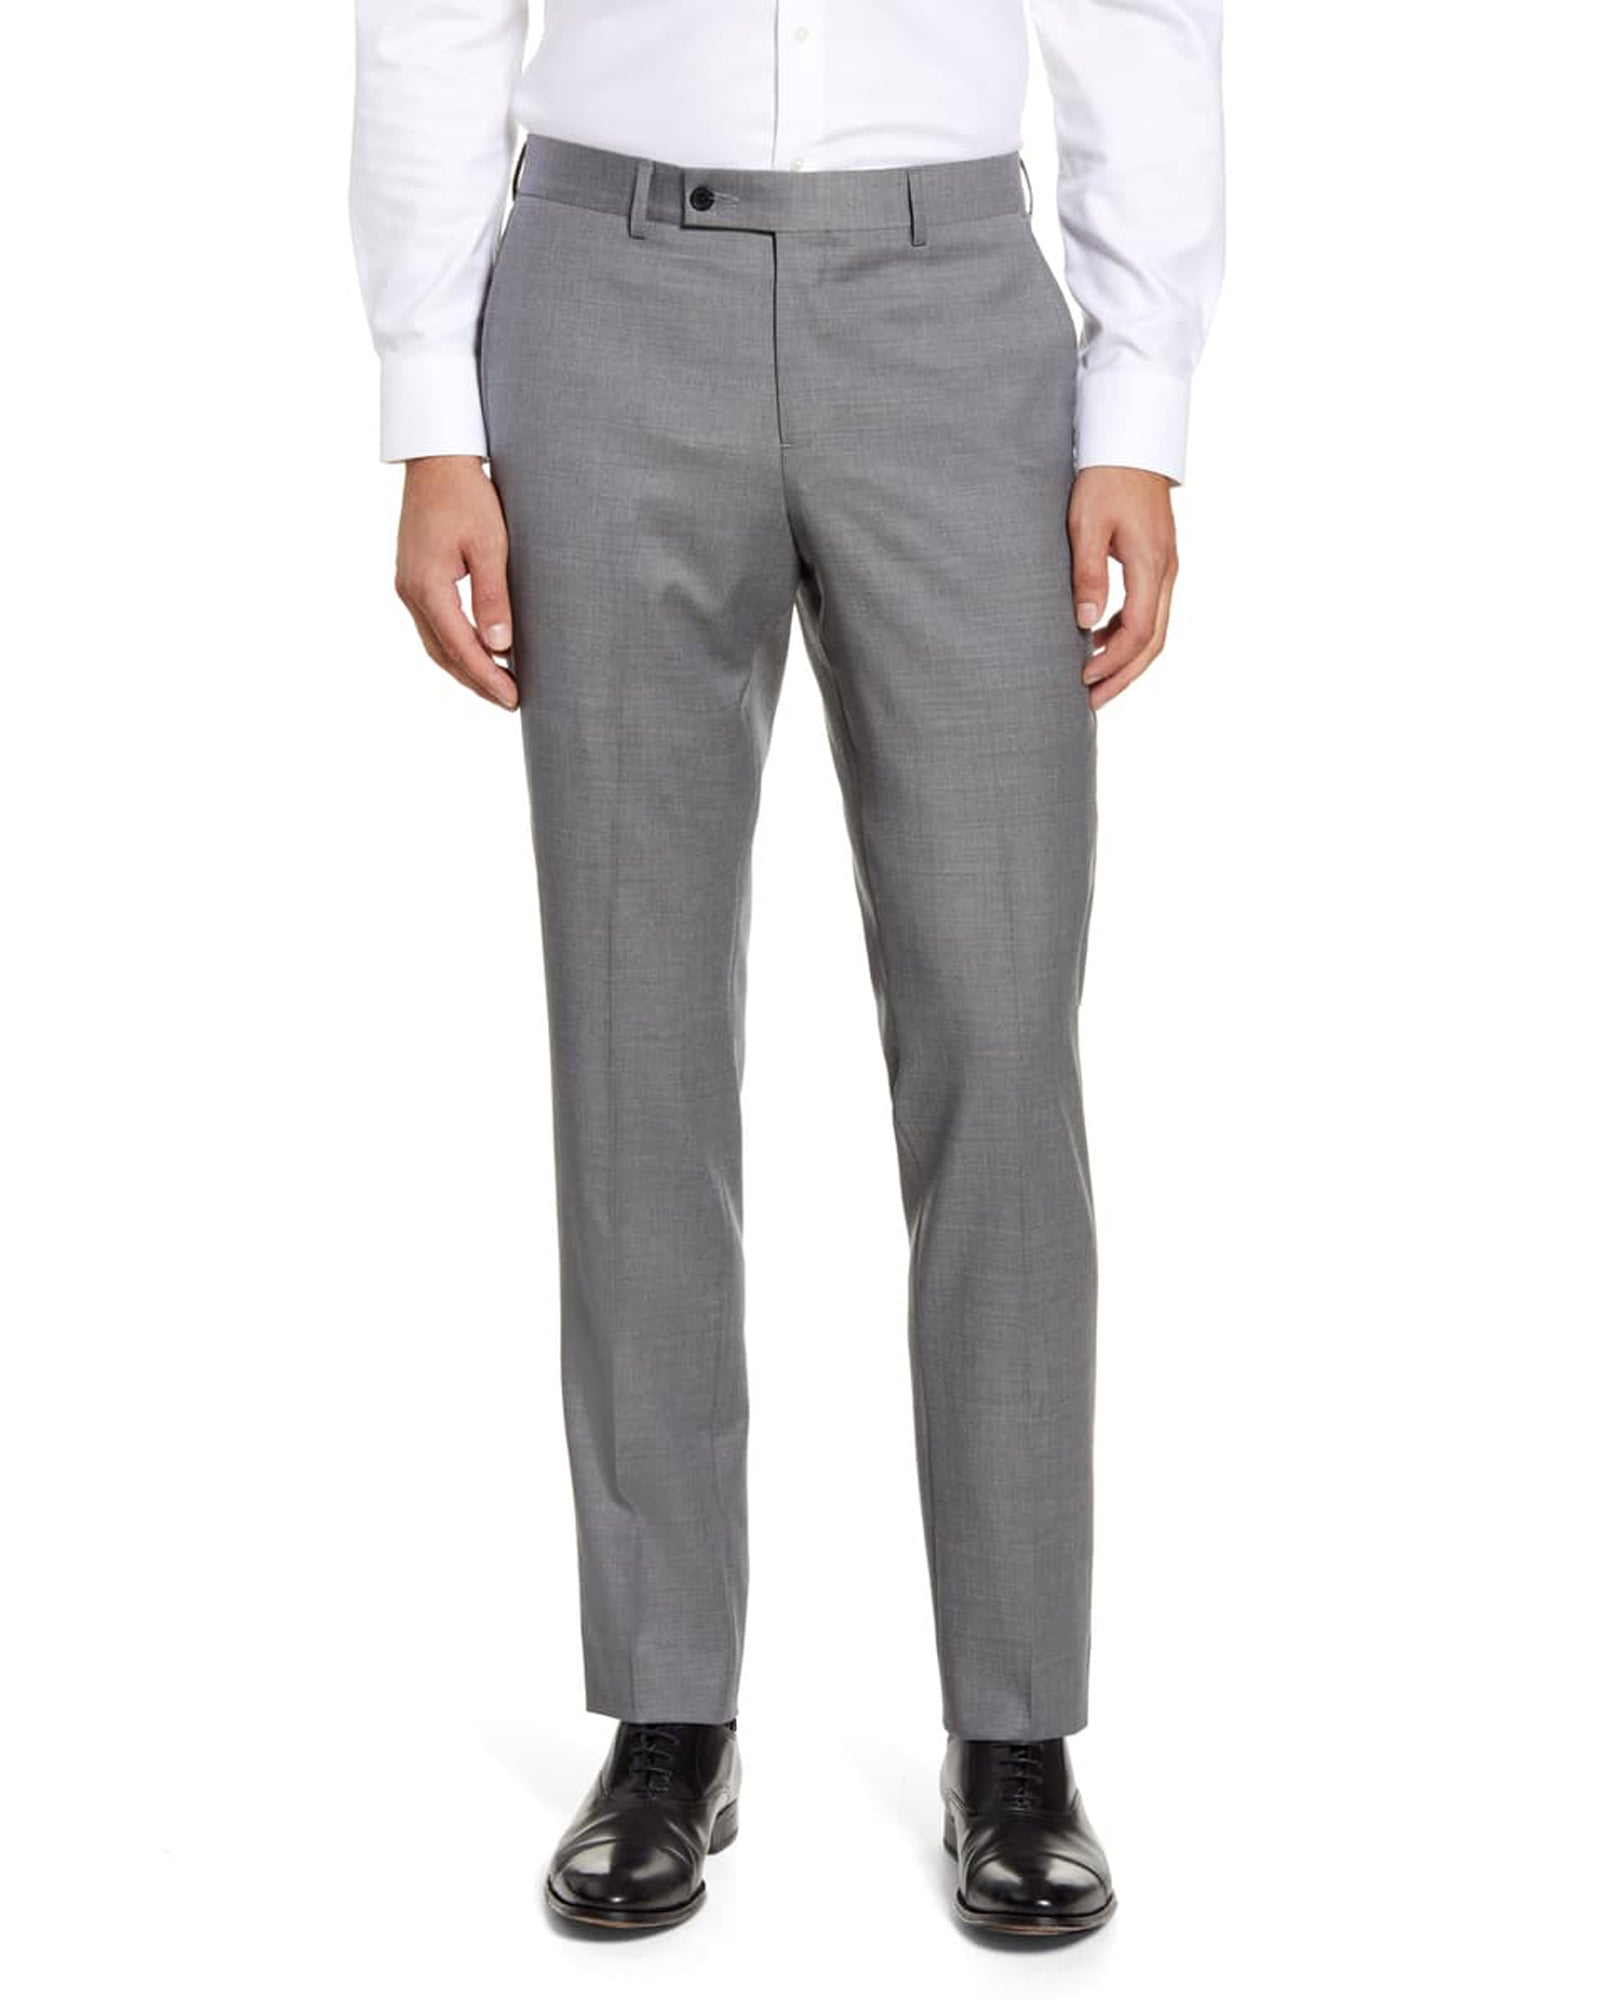 Rainwater's Fine Tropical Weight Man Made Fabric in Light Grey Slim Fit Slacks - Rainwater's Men's Clothing and Tuxedo Rental